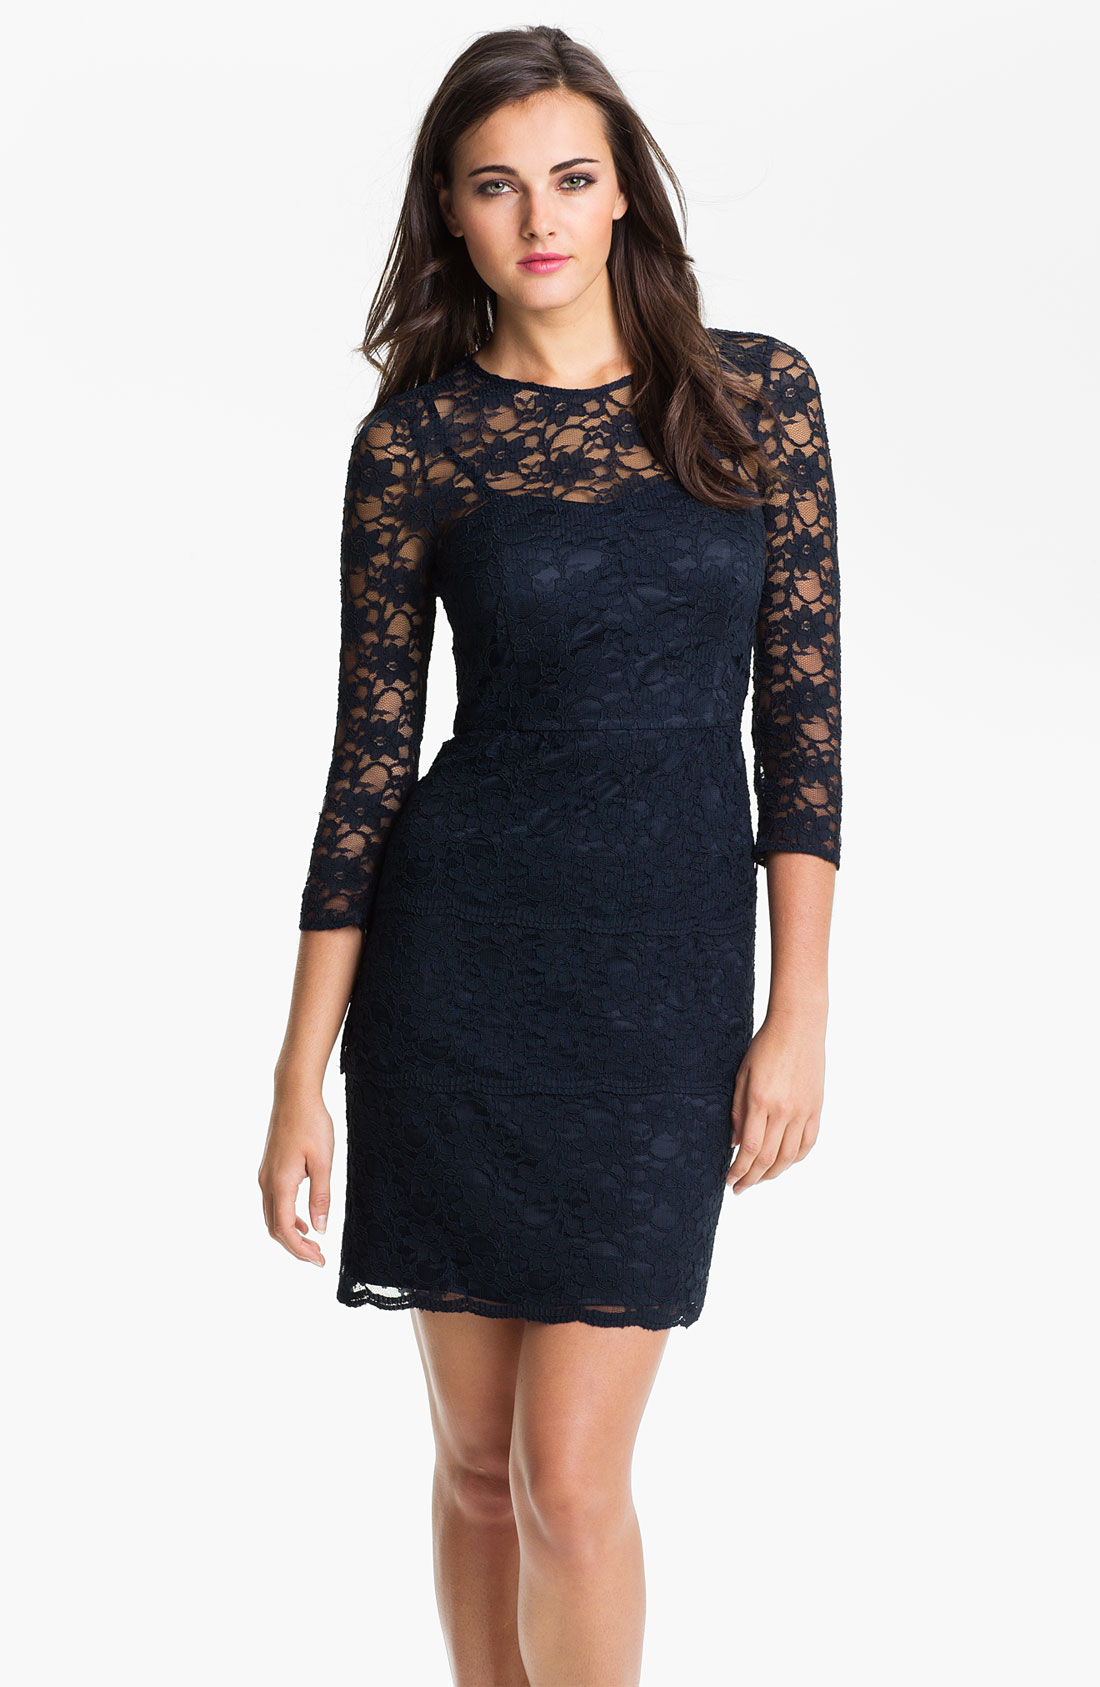 Navy blue lace sheath dress - All Pictures top